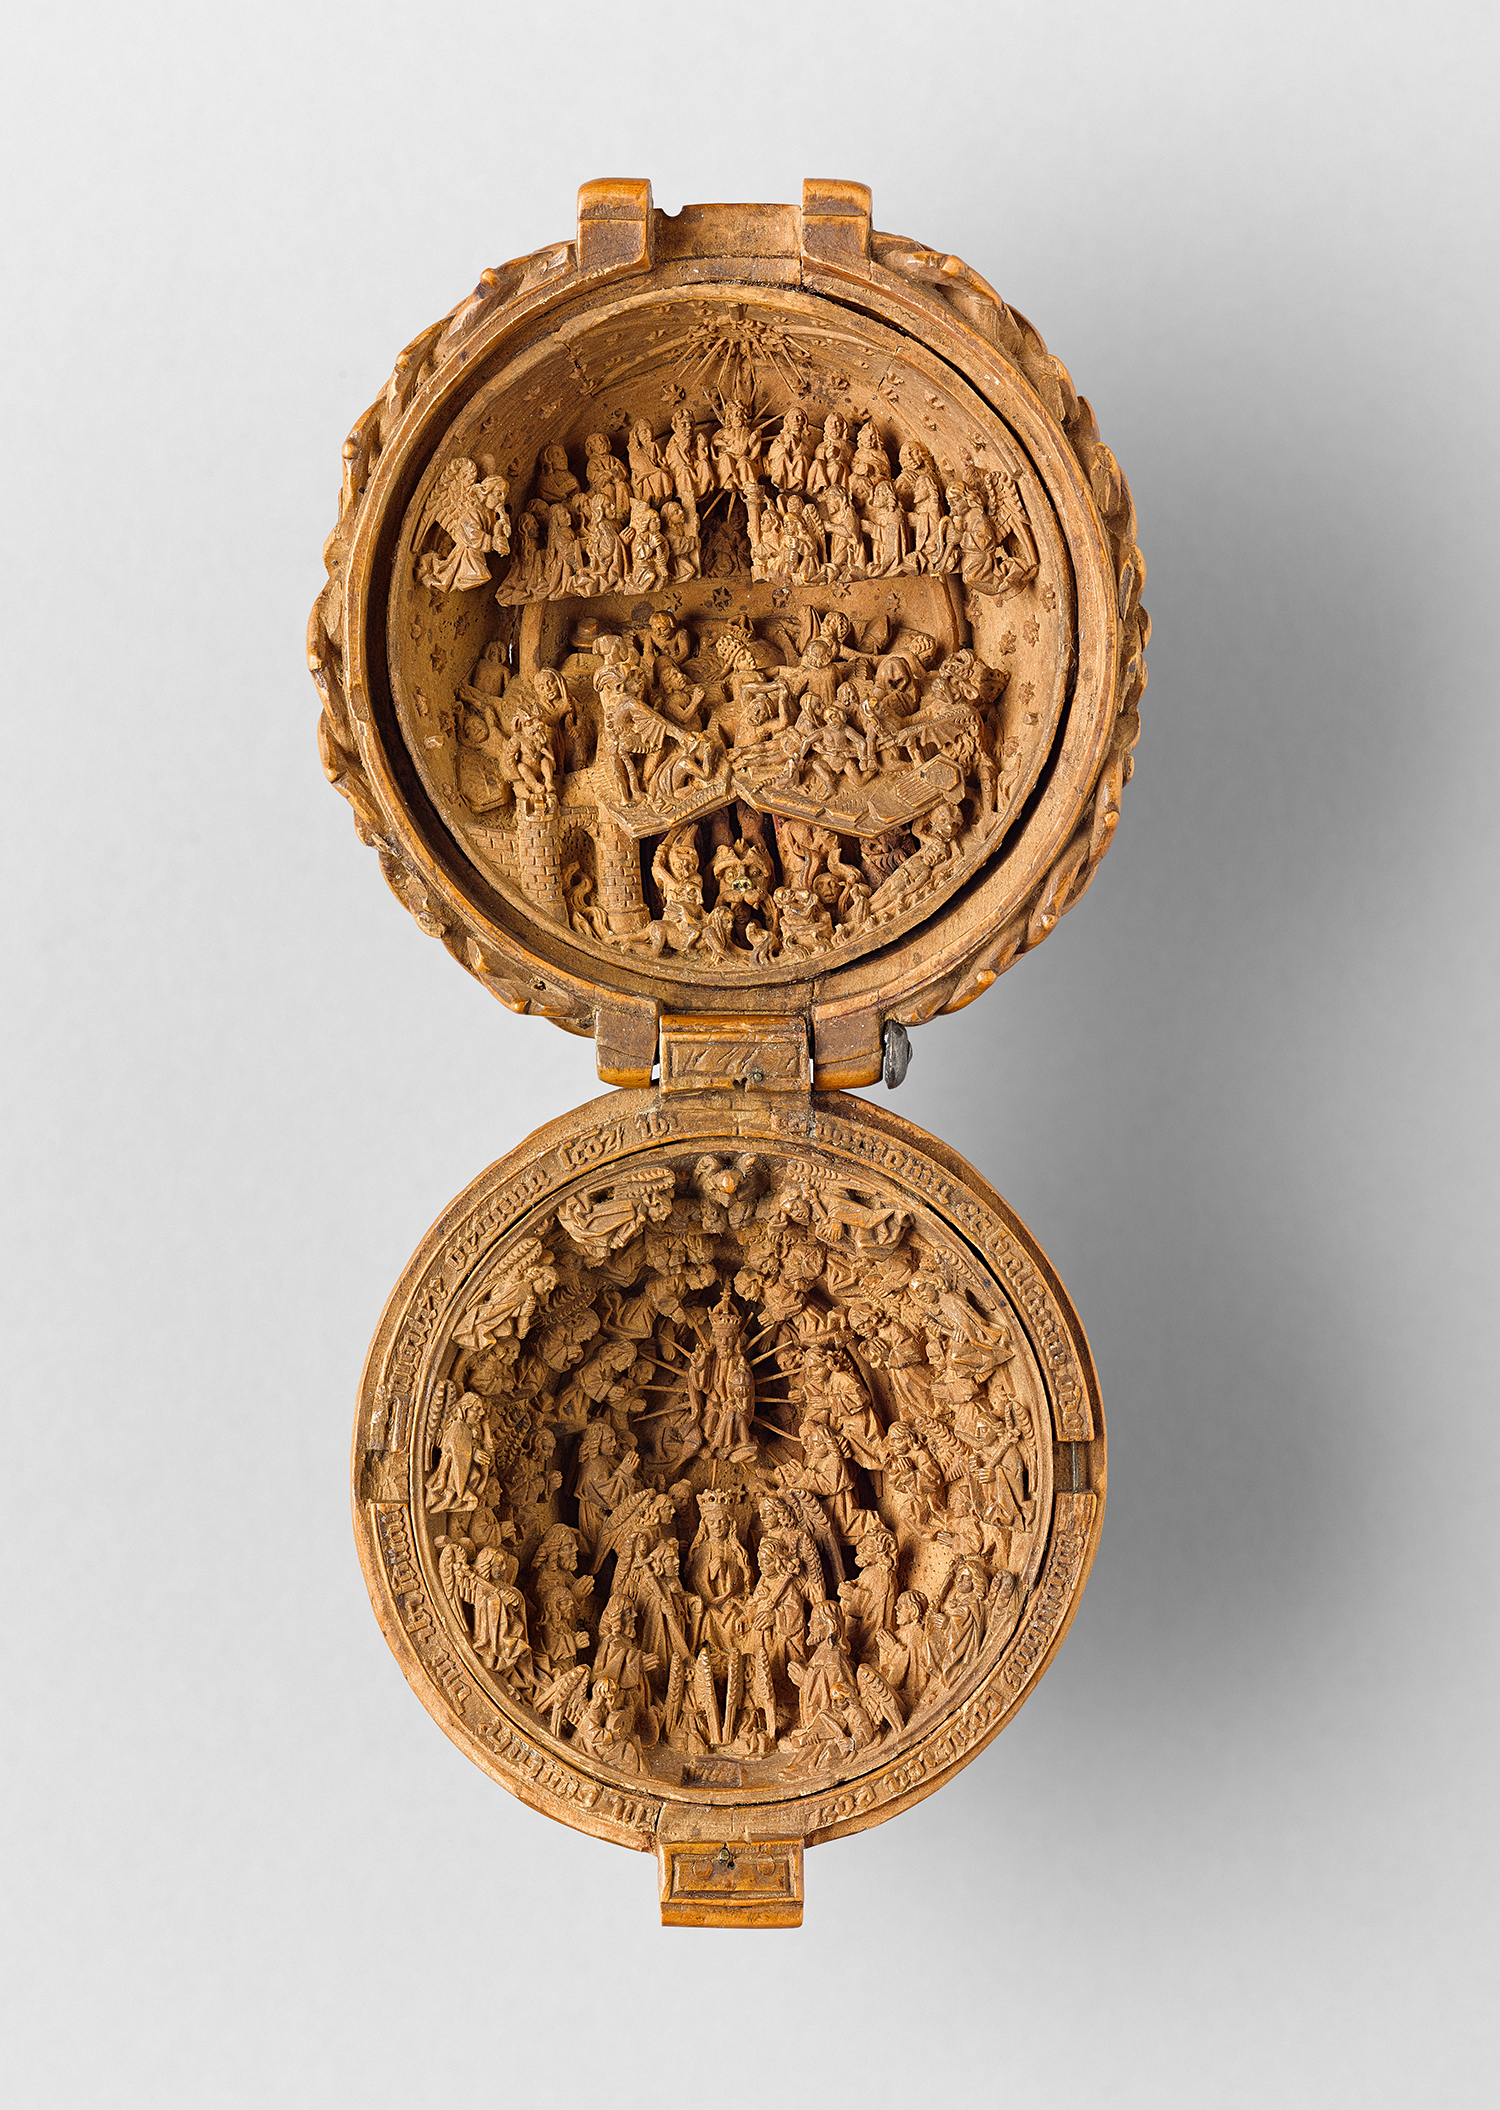 boxwood-prayer-bead-last-judgment-coronation